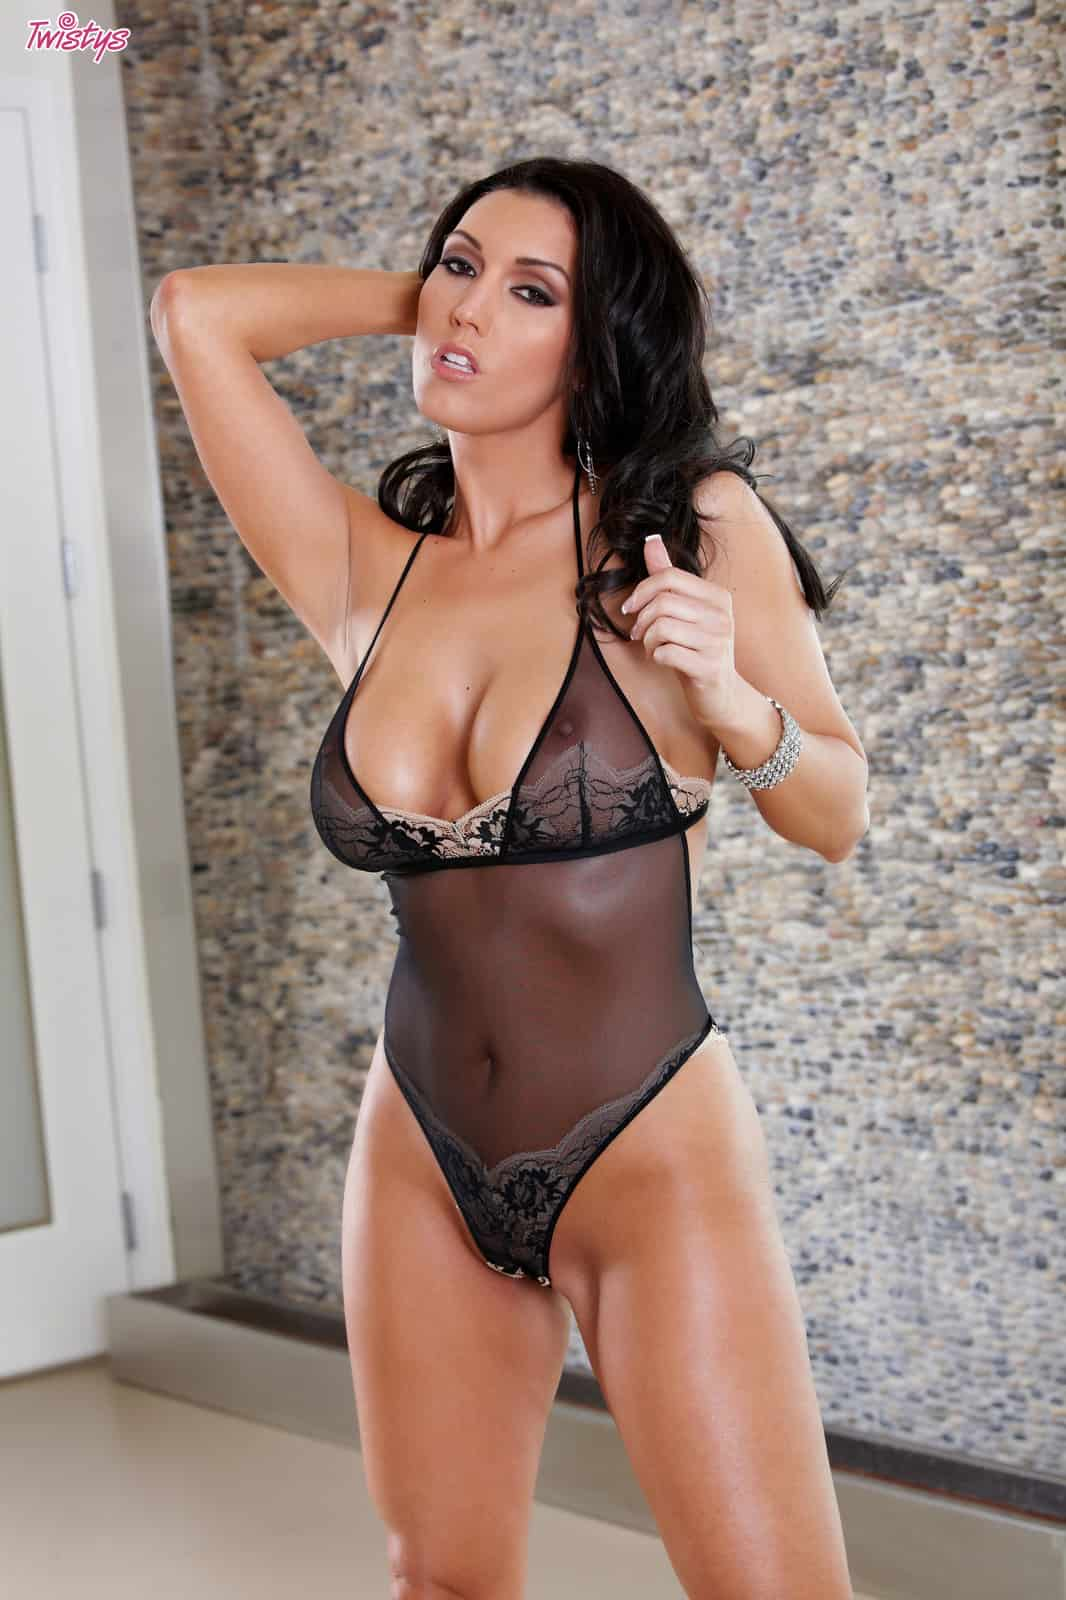 Dylan ryder tube videos